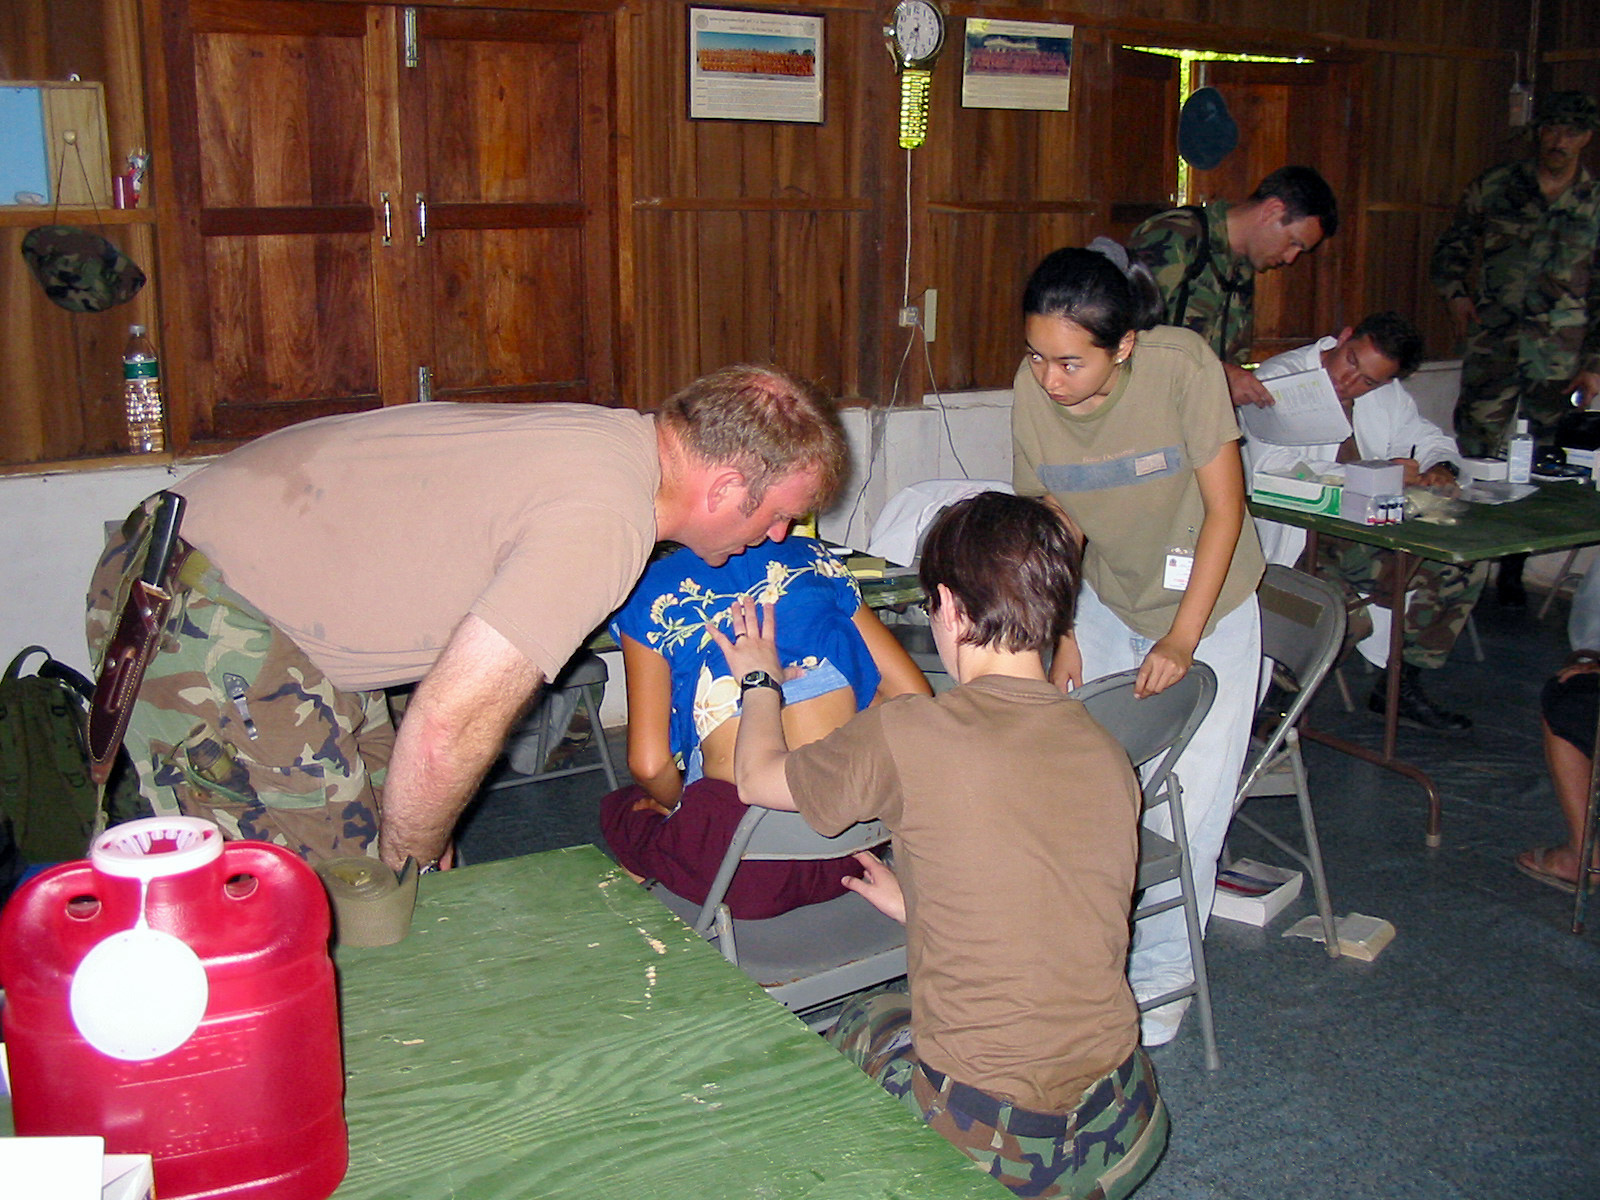 US Army (USA) Medical Doctors assigned to 2nd Battalion, 1ST Special Forces Group (SFG) Airborne, examine a local Thai woman during the Medical Community Assistance Program (MEDCAP) at Ban Dong, Thailand, during Exercise COBRA GOLD 2003